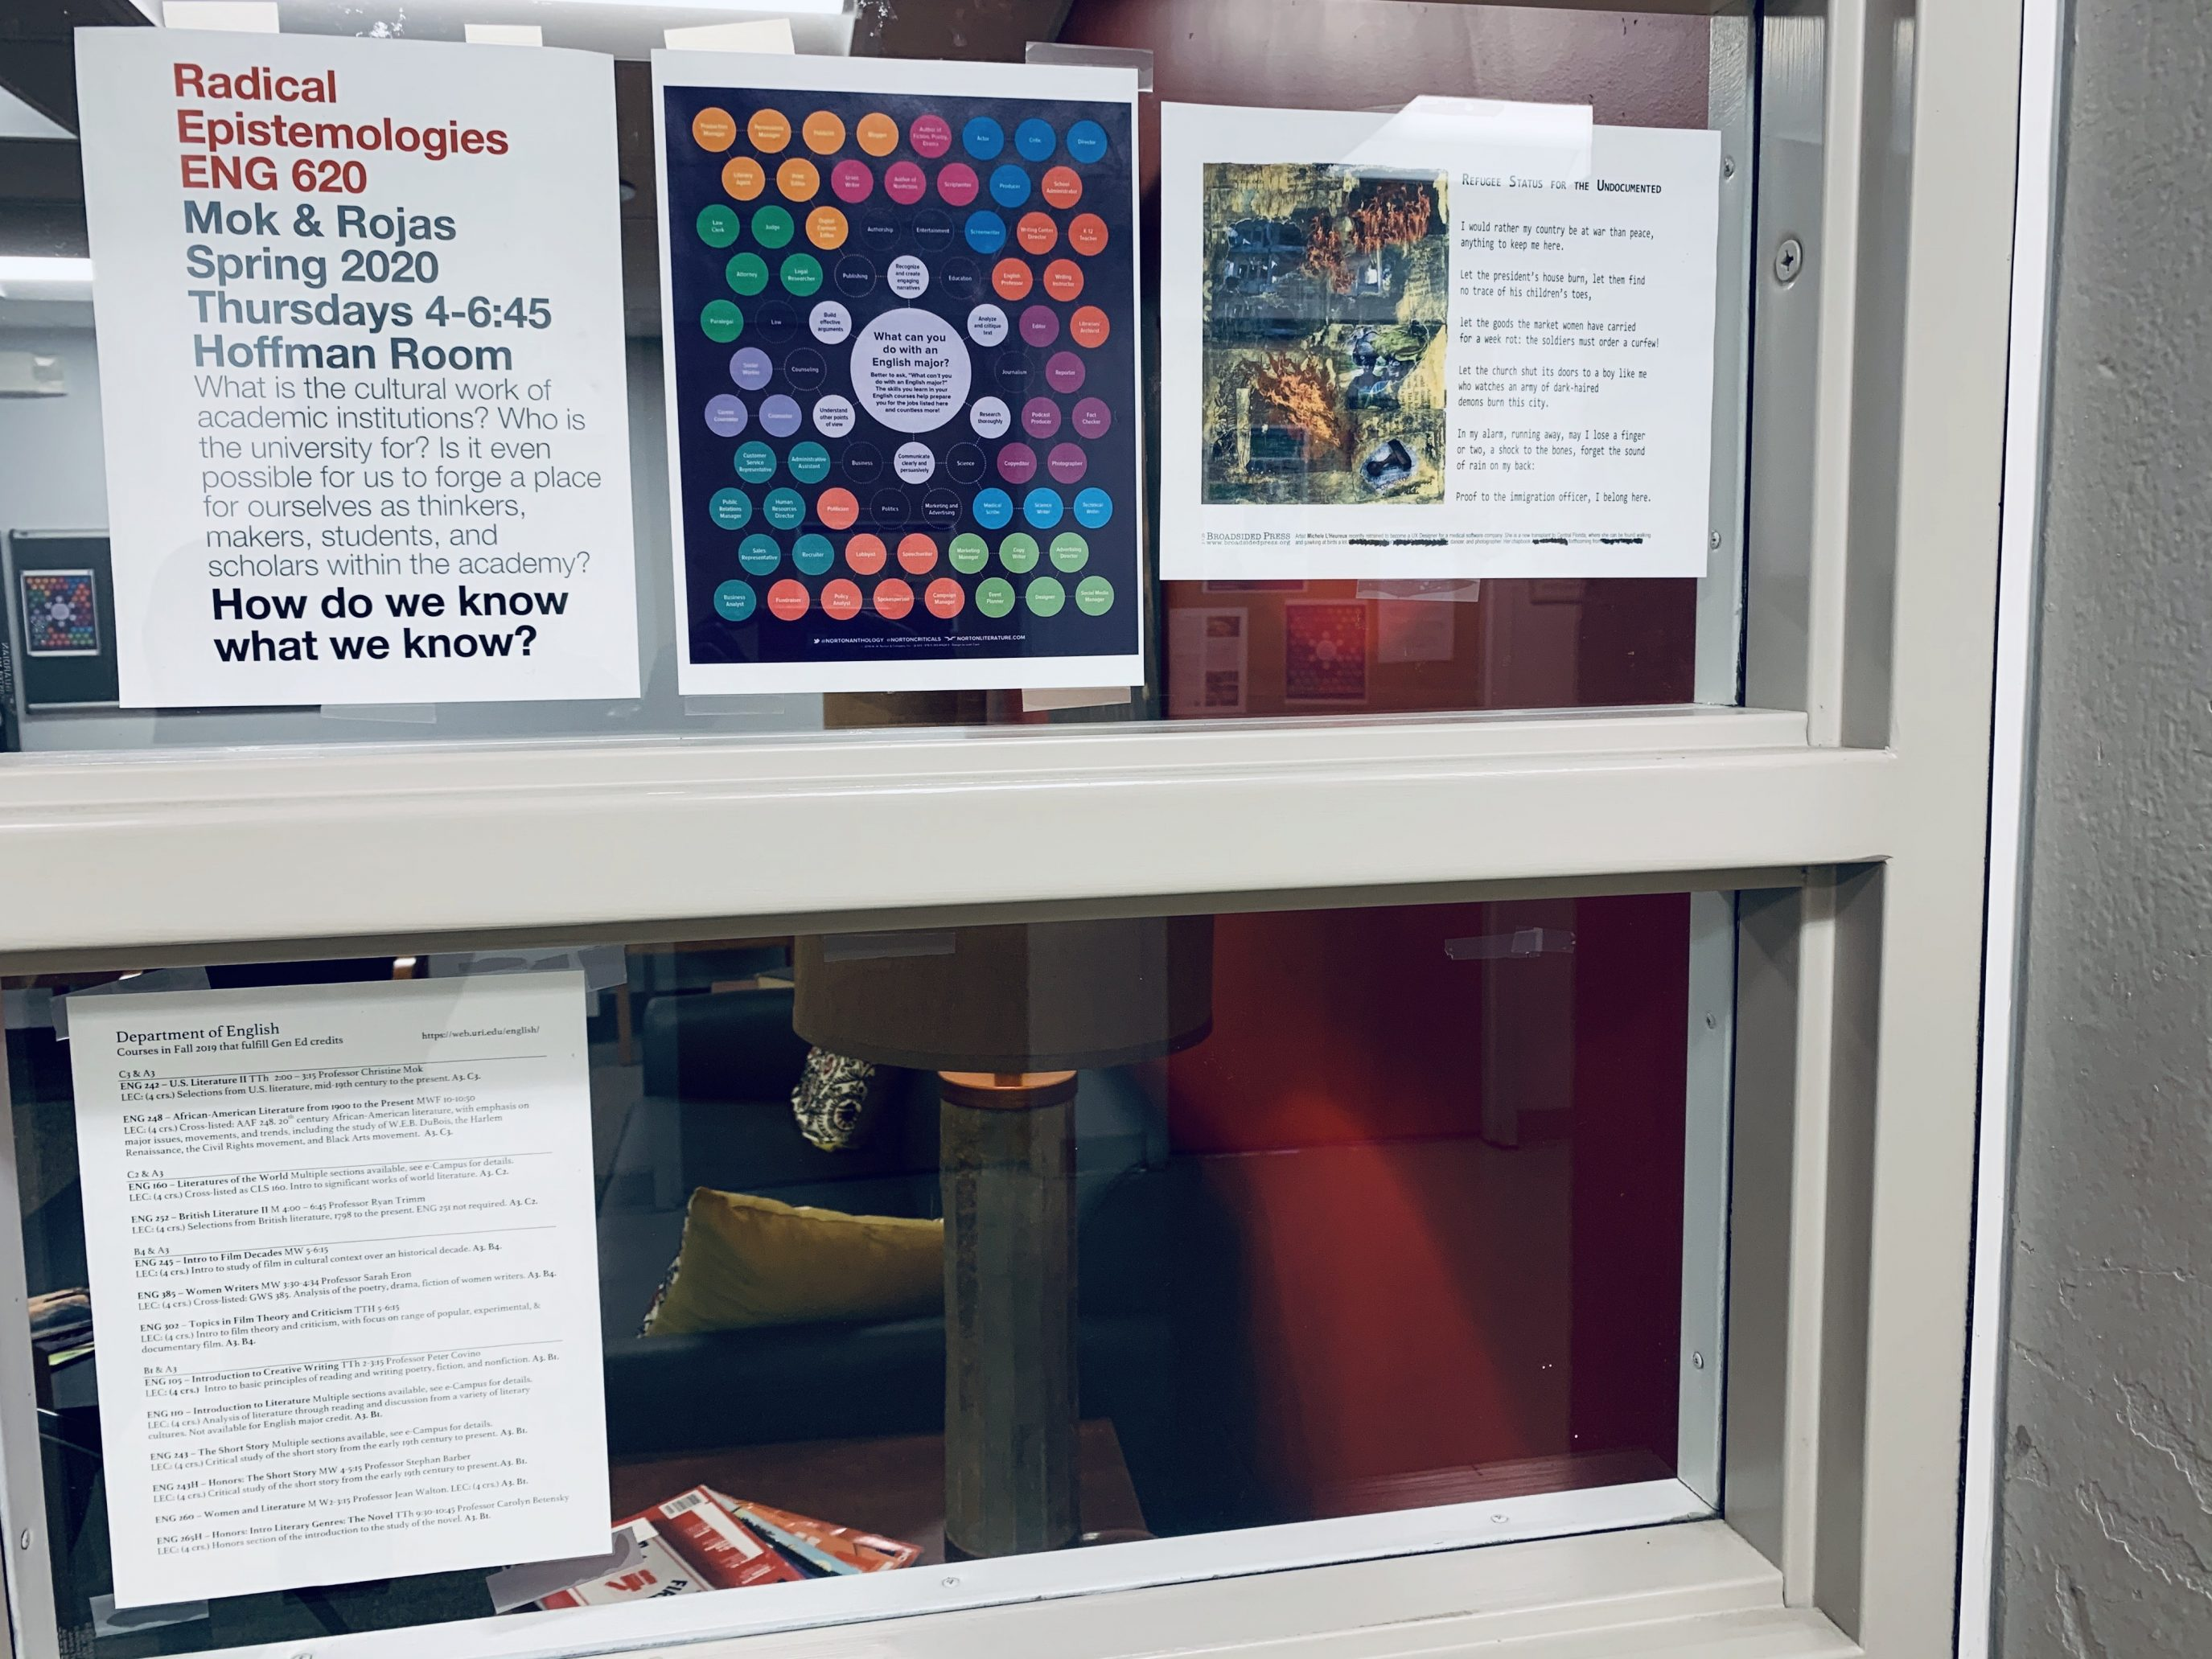 Poet Jae Elim posted the broadside upon a window next to the flyers on college campus life.